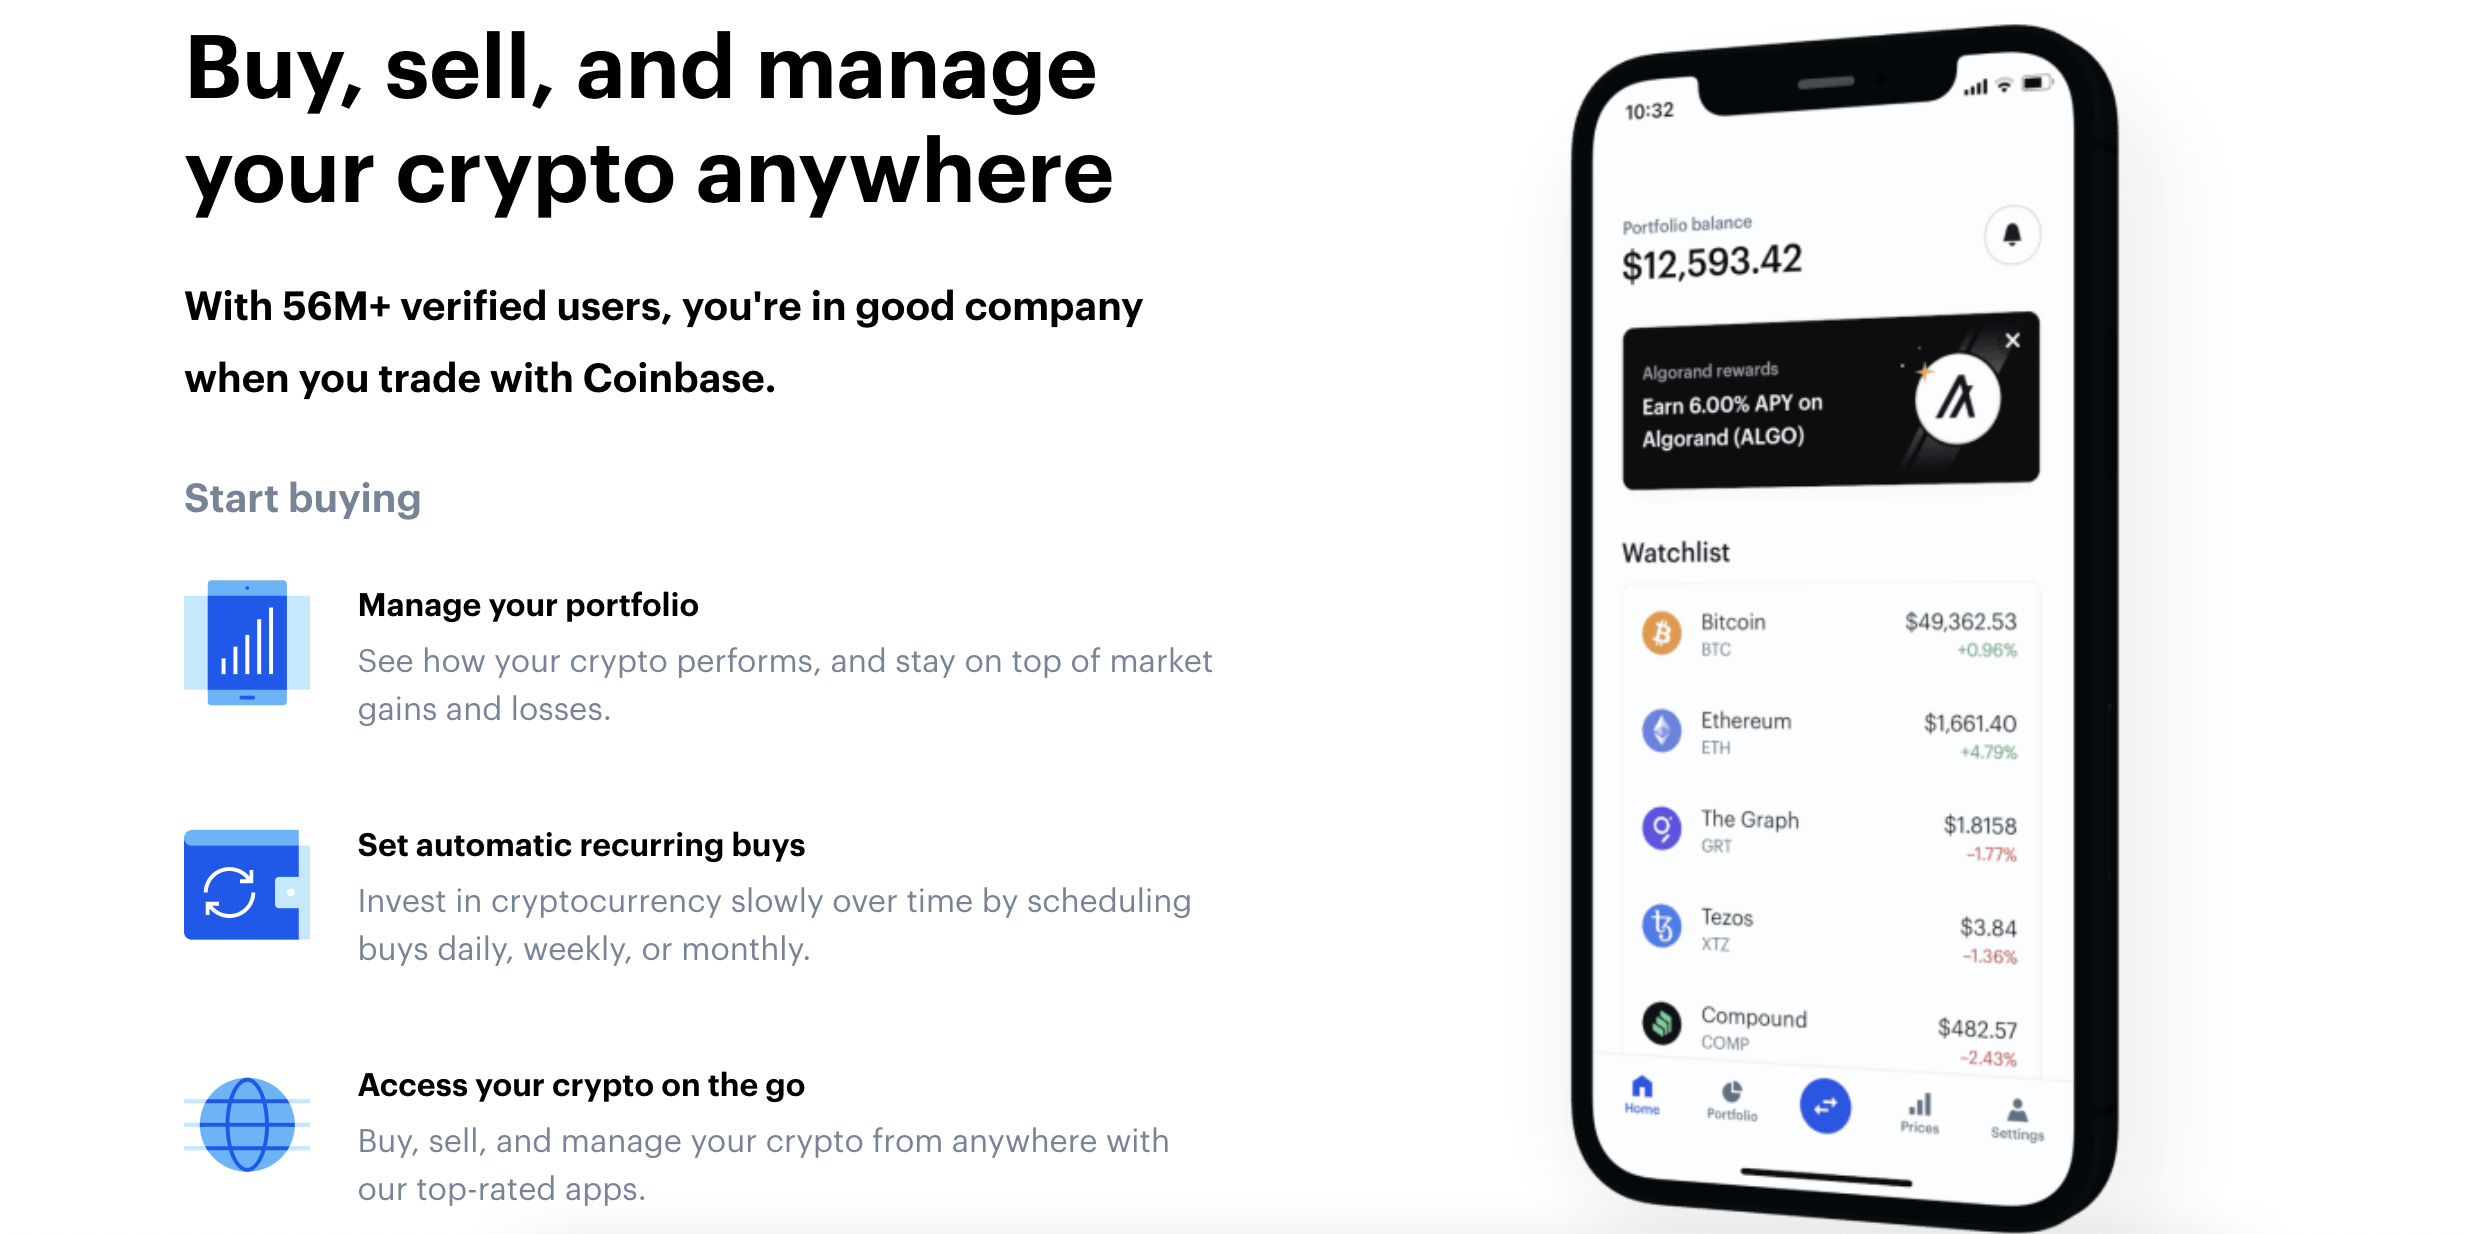 A screenshot from coinbase.com that shows the homescreen of the app, including the portfolio balance, rewards, and coins you've added to your watch list. According to the image, the main features of the app are managing your portfolio, setting automatic recurring buys, and accessing your crypto on the go.